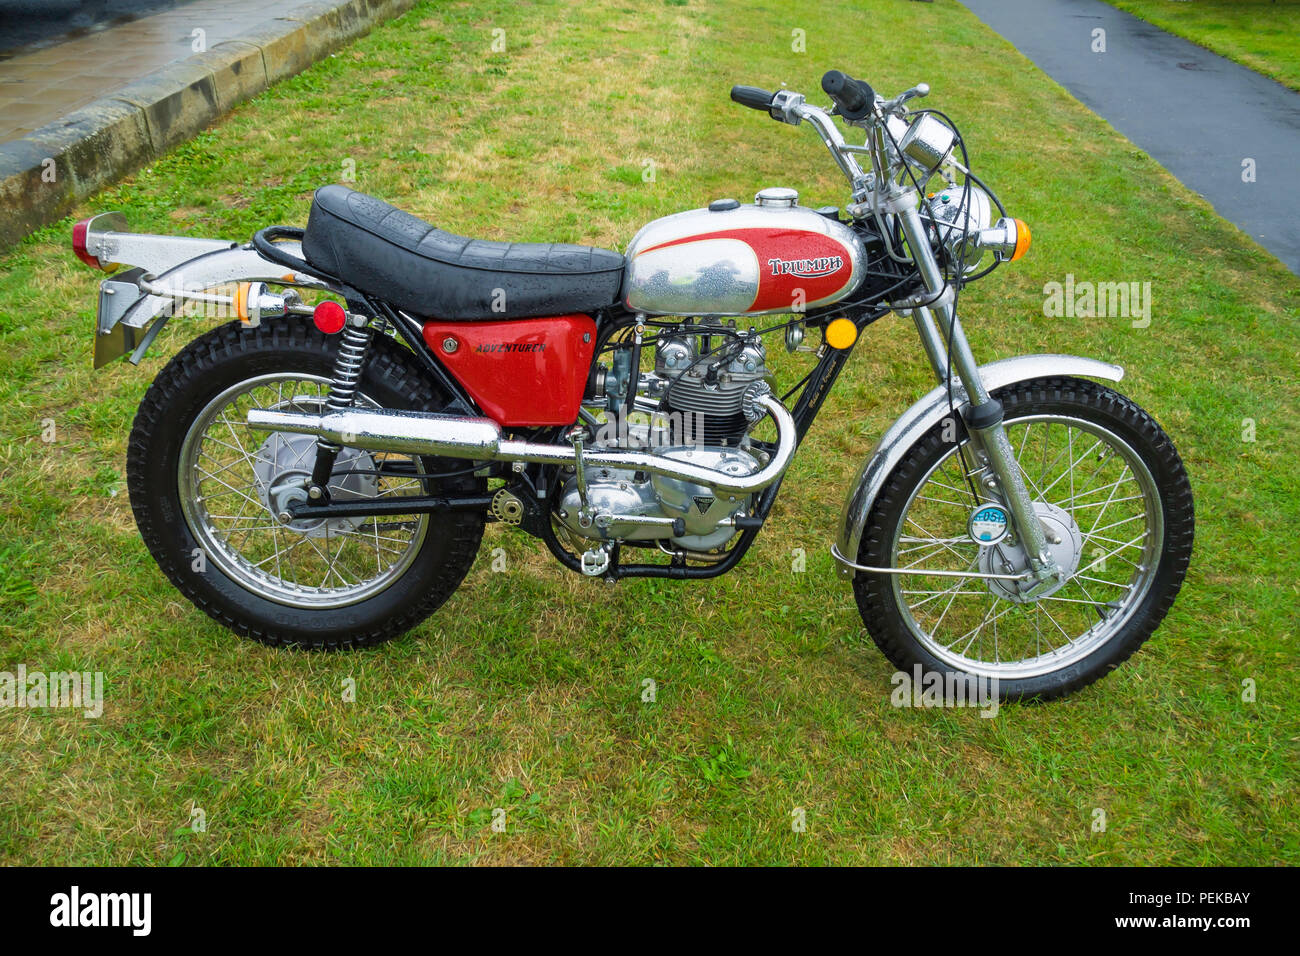 Triumph Trophy 500cc twim Trail motorbike Stock Photo